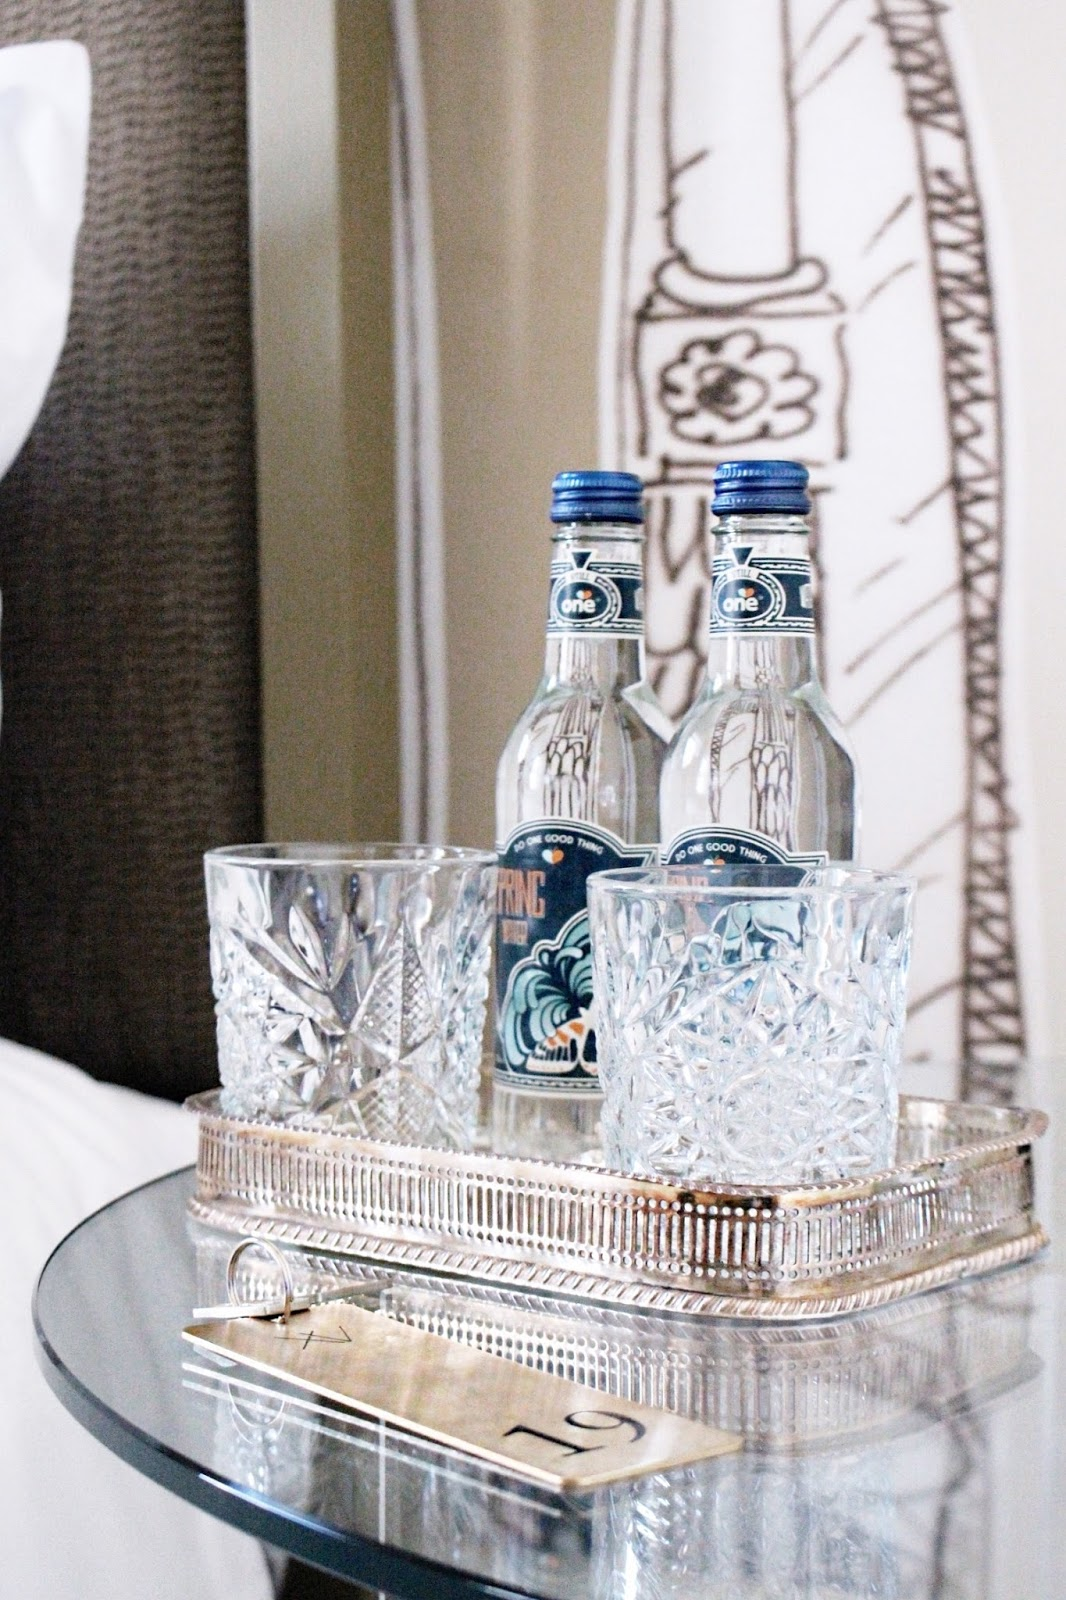 Luxurious side table hotel accessories